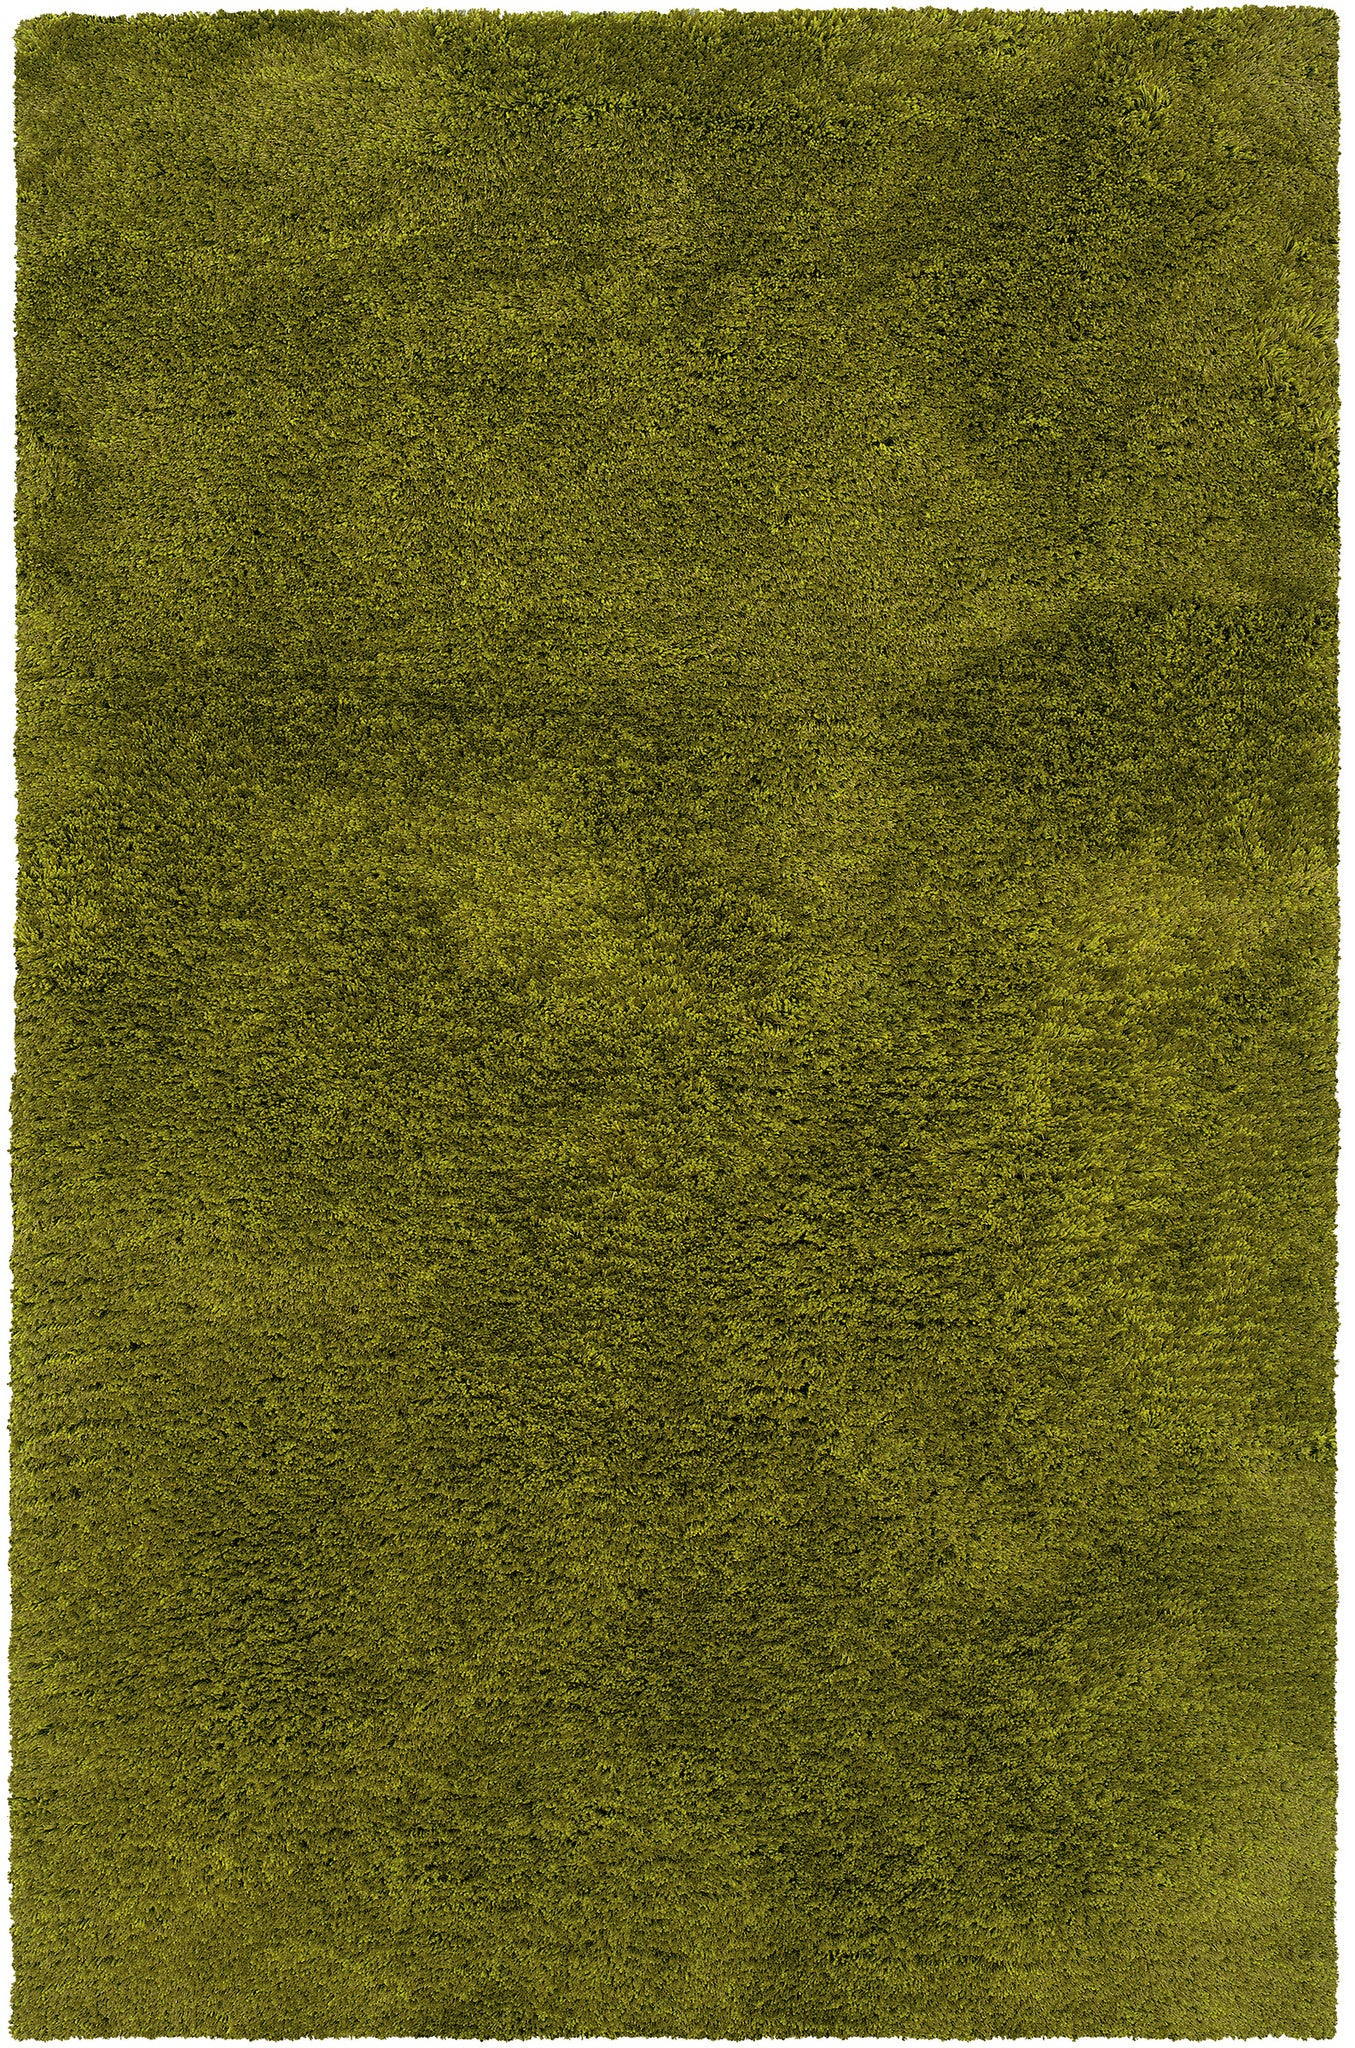 ebay innovative lime unique rug design best olive rugs fresh stunning outdoor green designs of